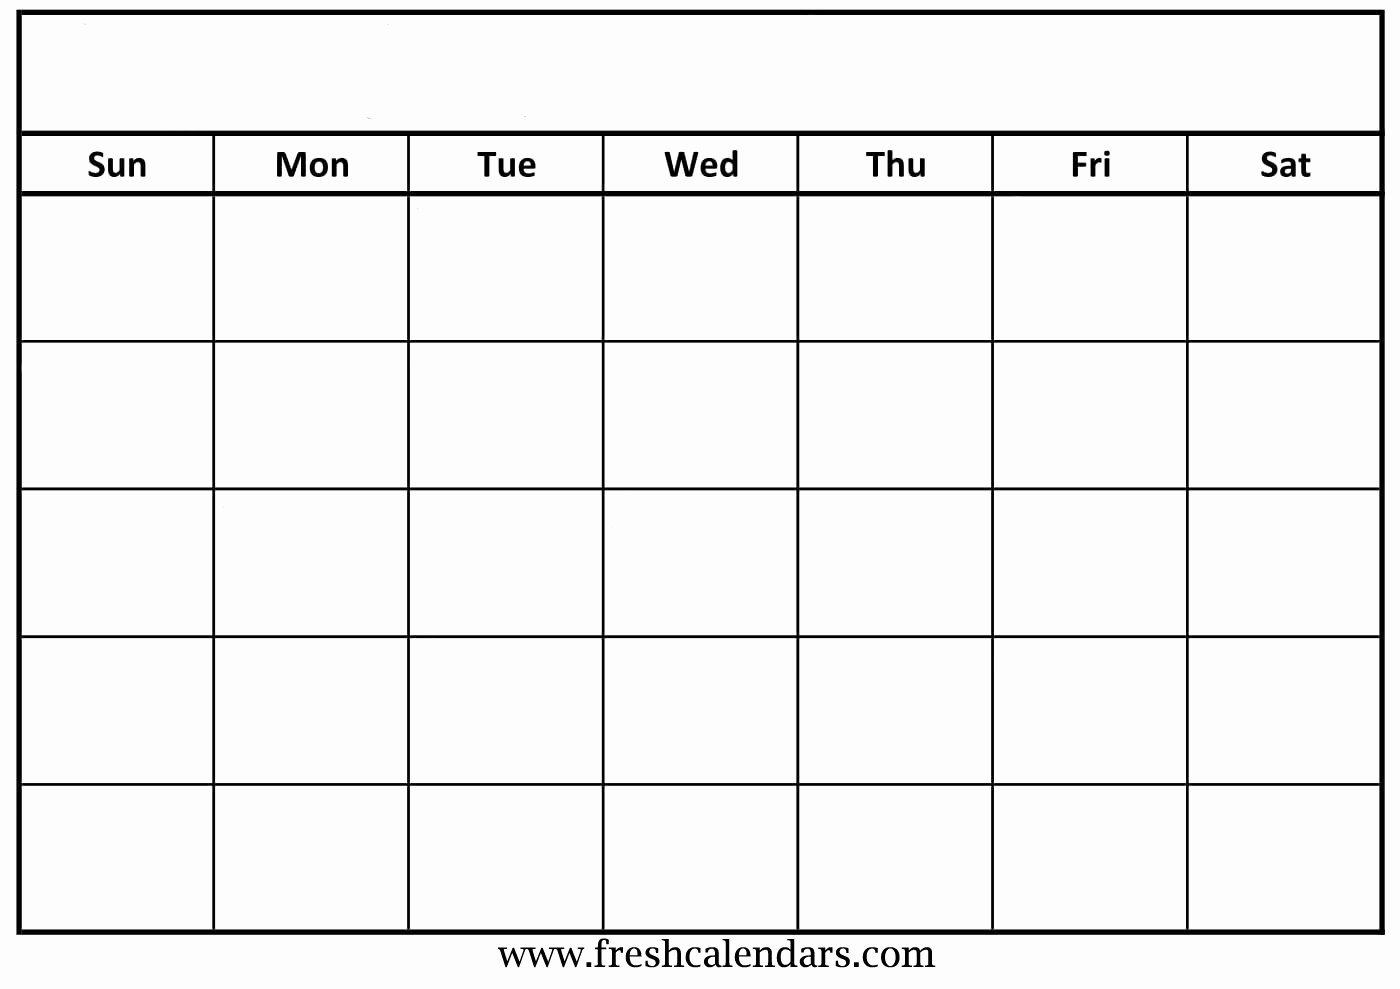 Free Printable Weekly Calendar 2019 Inspirational Blank Calendar Wonderfully Printable 2019 Templates